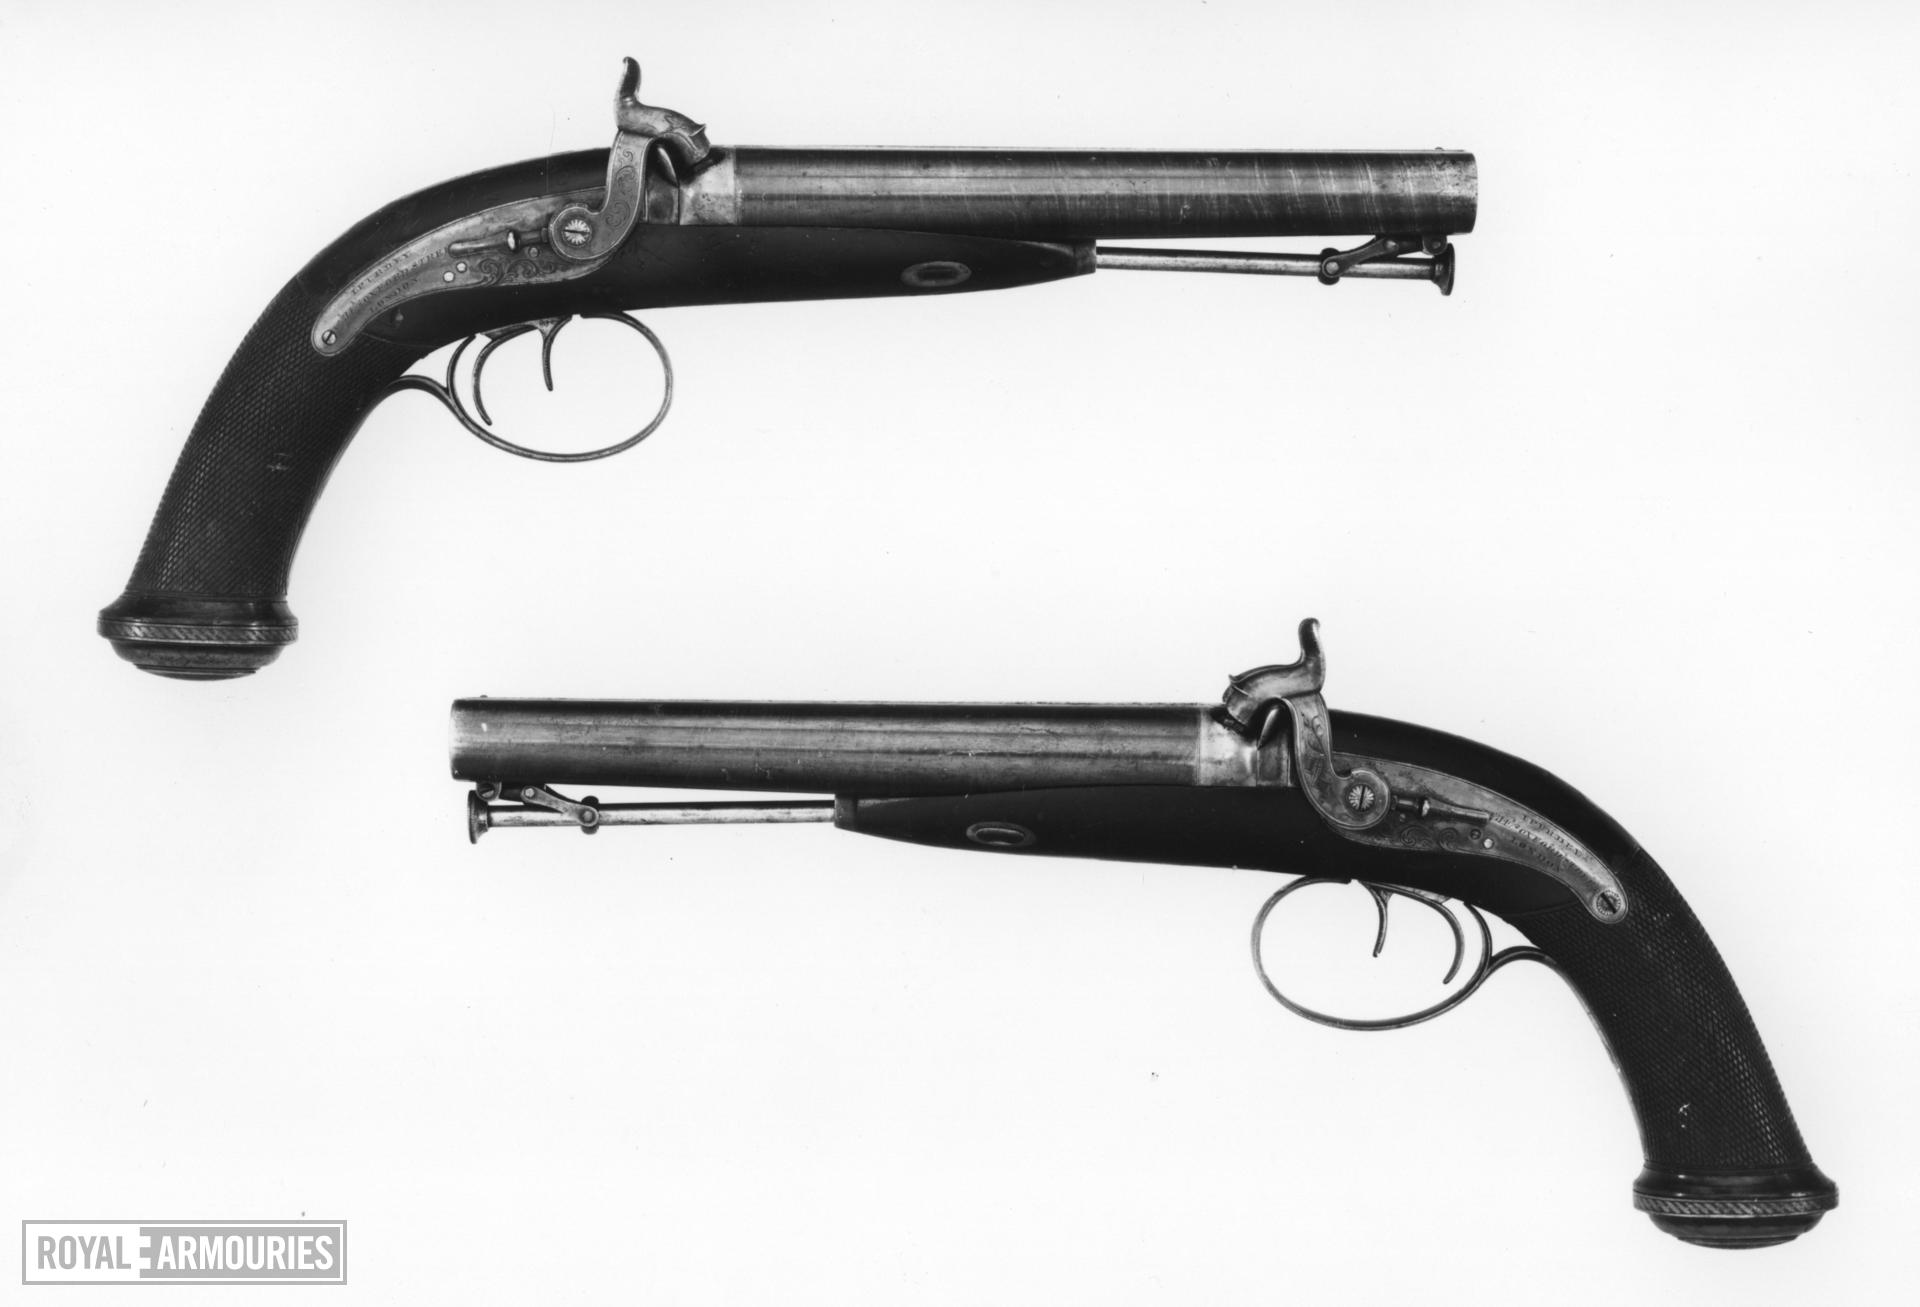 Percussion double-barrelled pistol - Howdah or holster pistol by J. Purdey